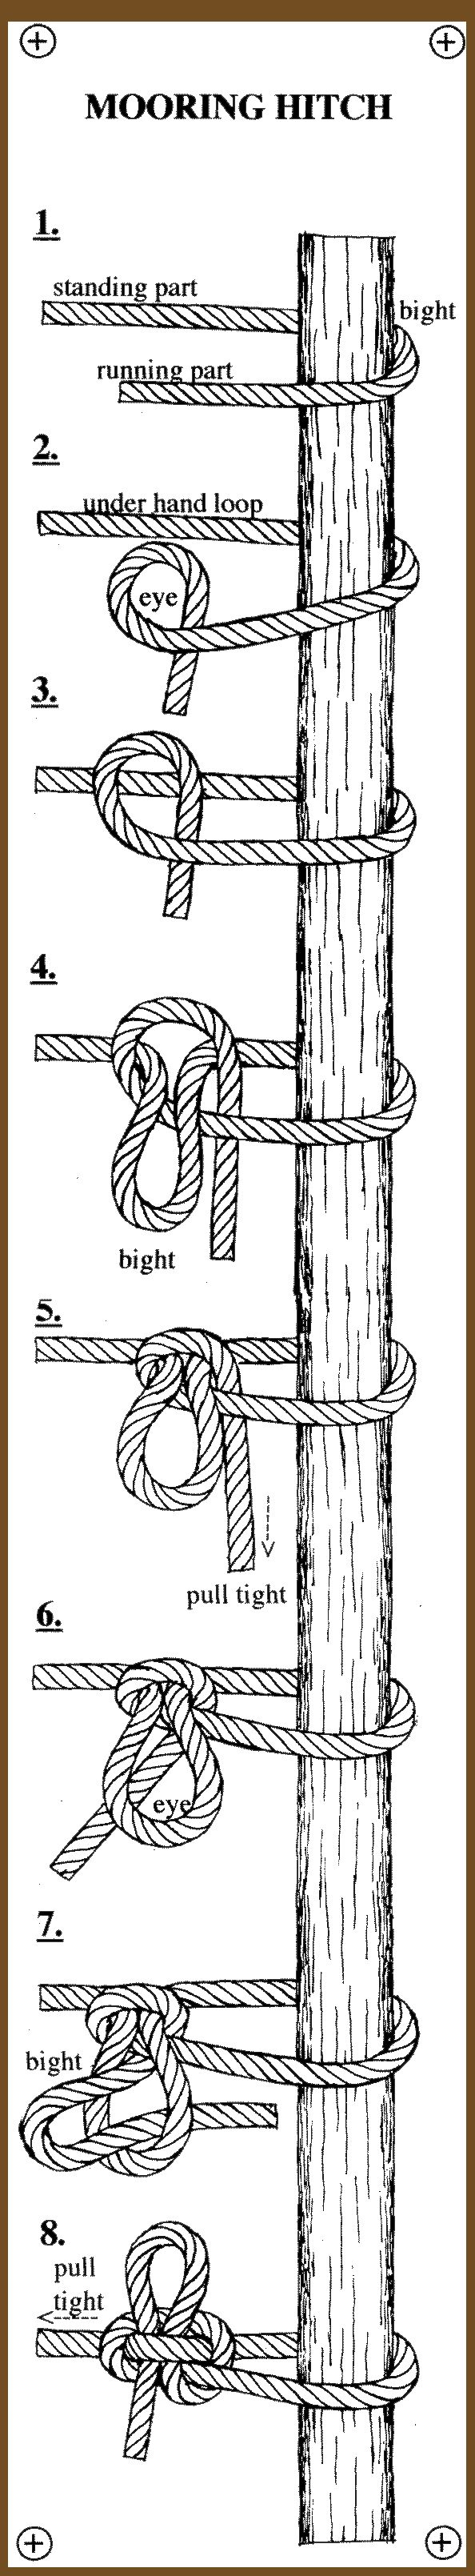 http://www.paracordist.com repin : mooring hitch #knot